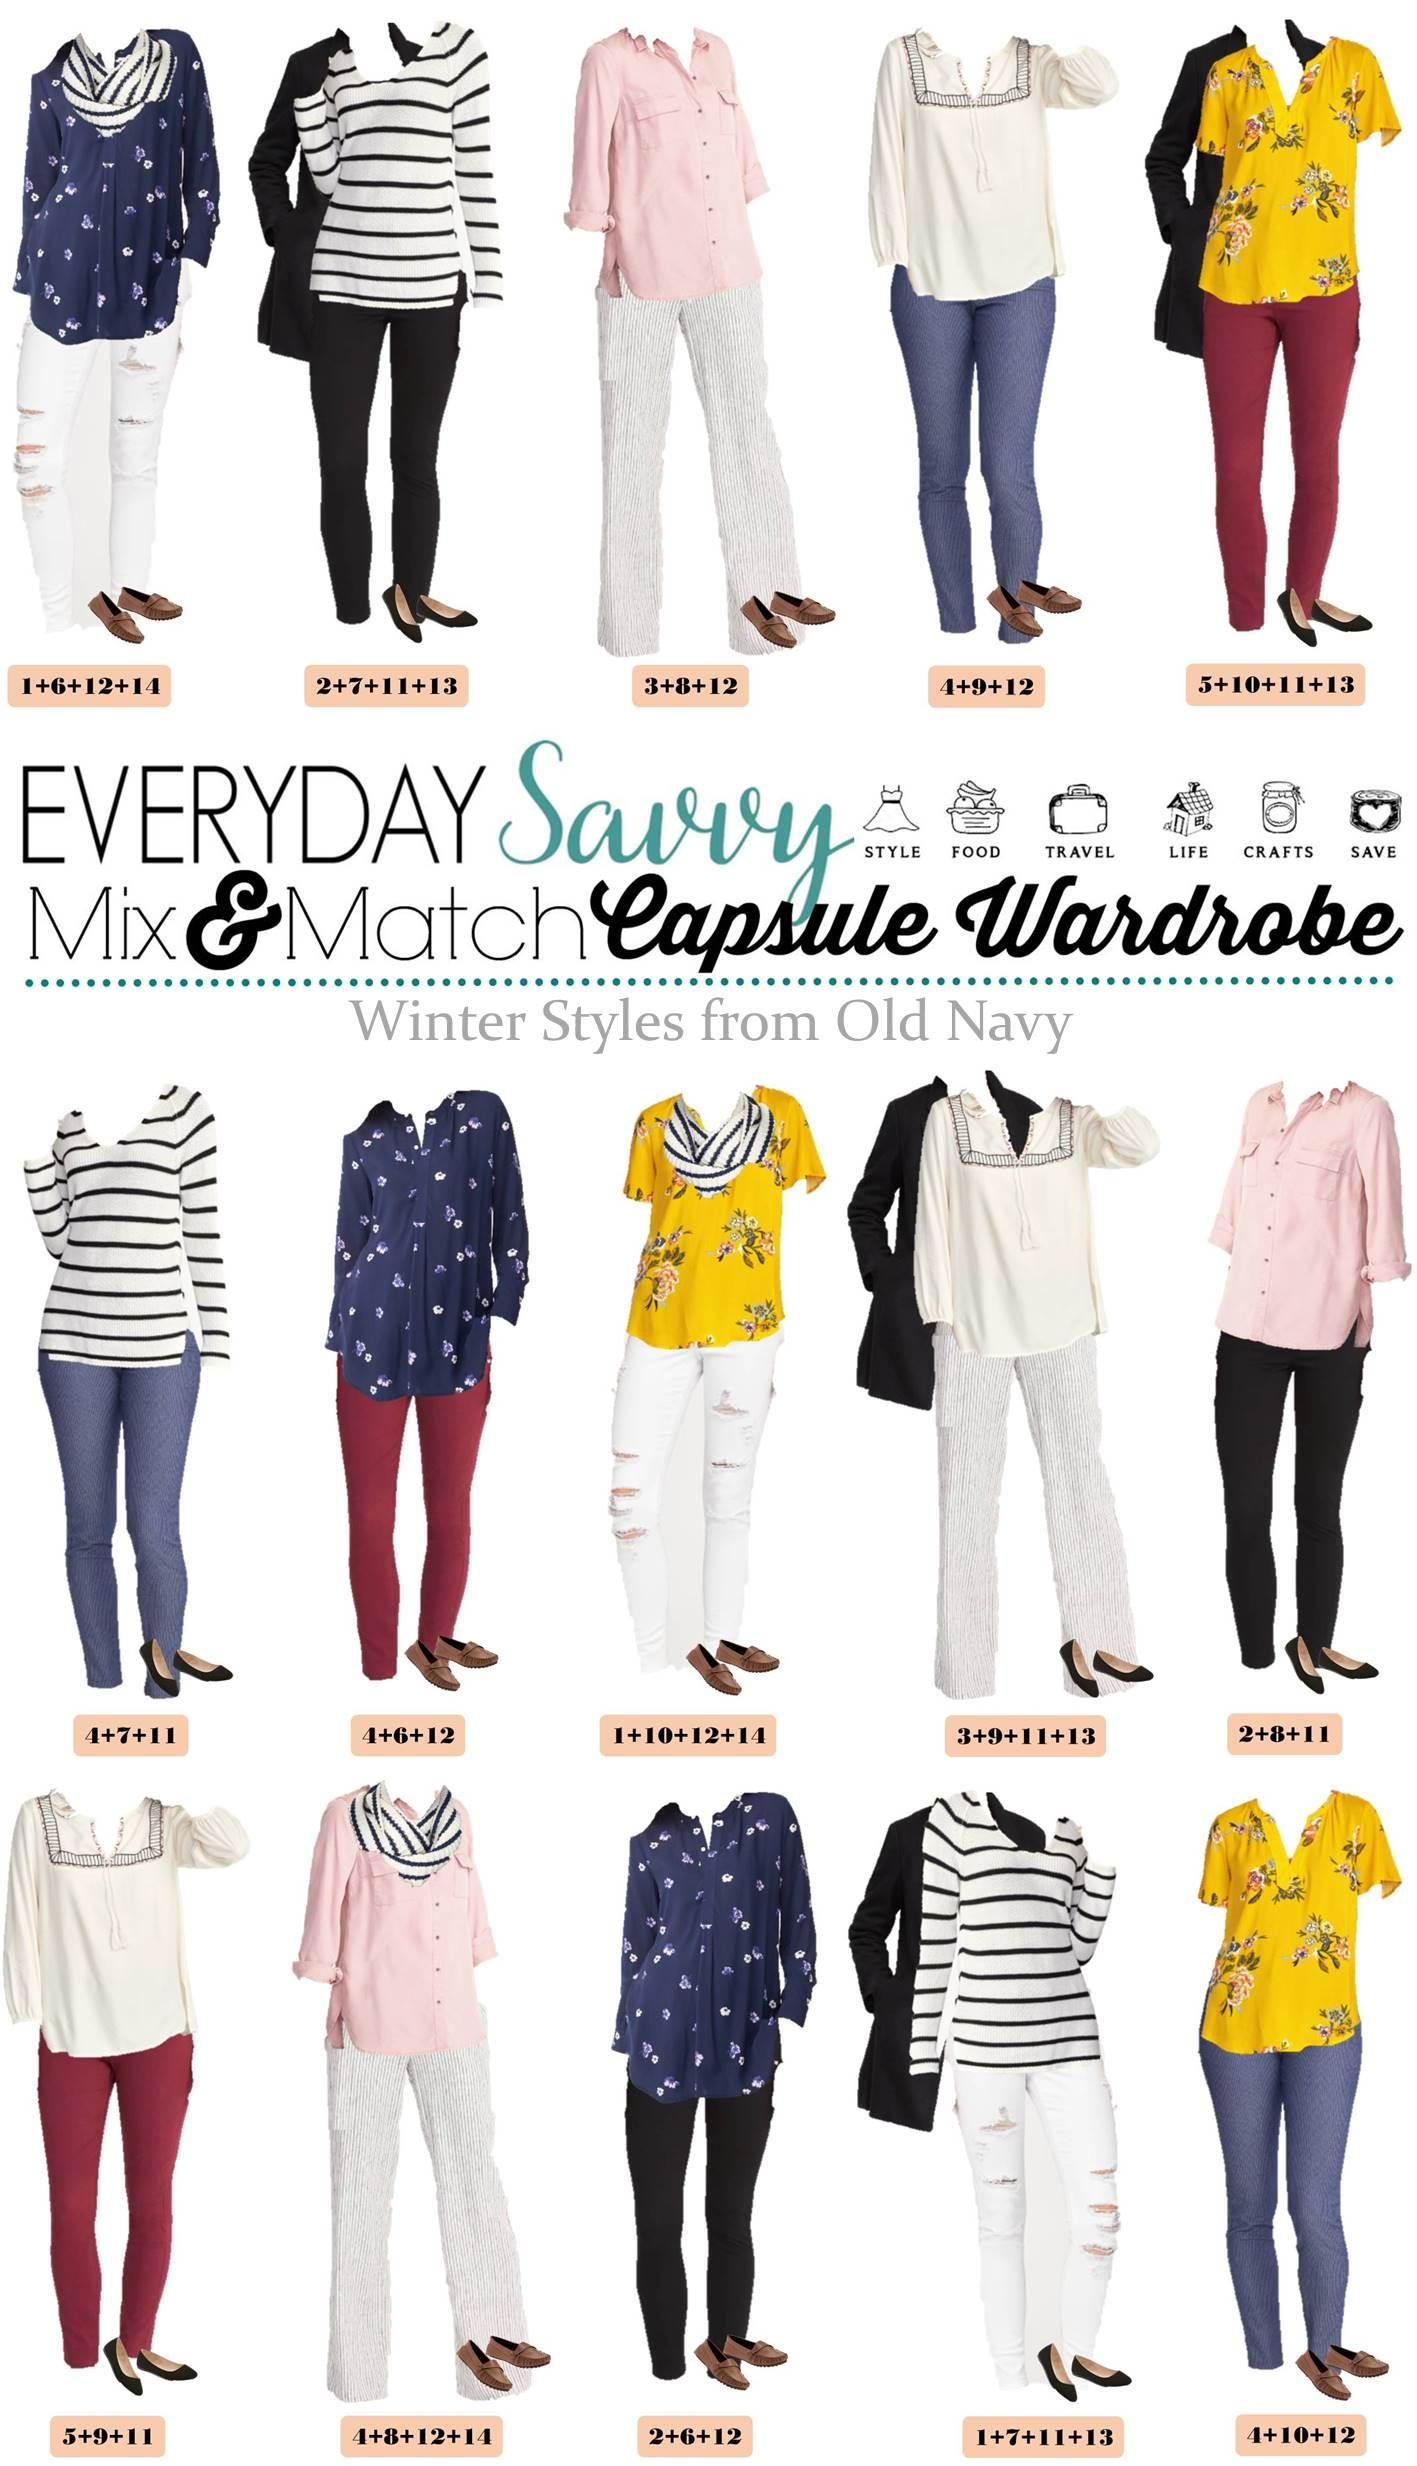 51c551870f Here is a fun and affordable Old Navy Winter to Spring Capsule Wardrobe.  These mix and match outfits transition easily to cute spring outfits for  women.